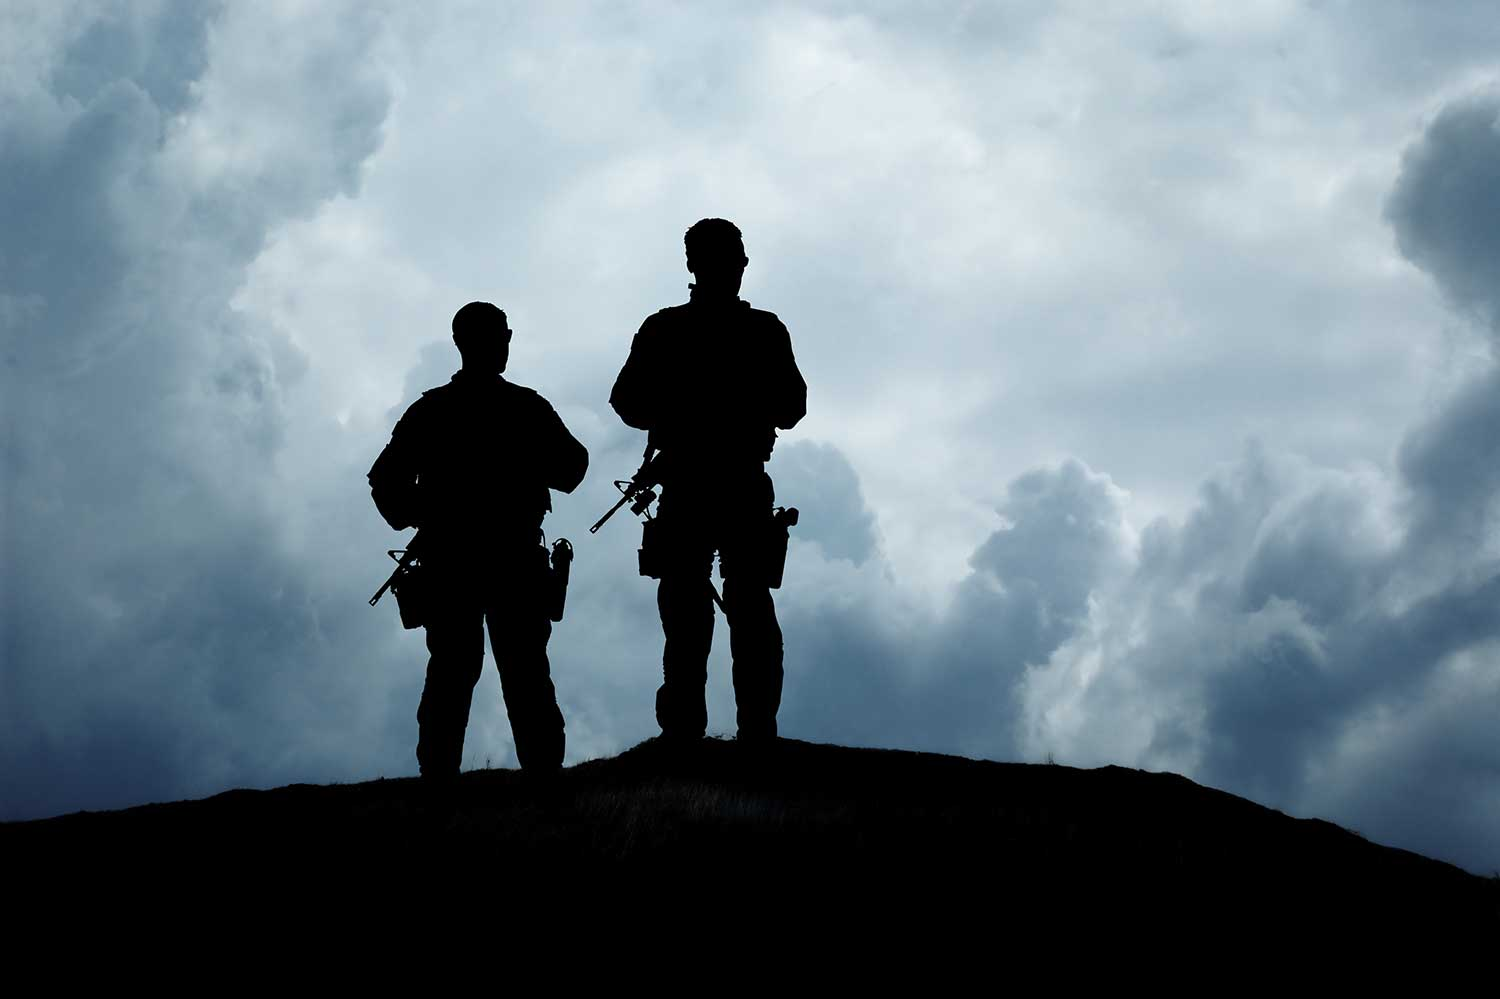 Two soldiers looking into the distance